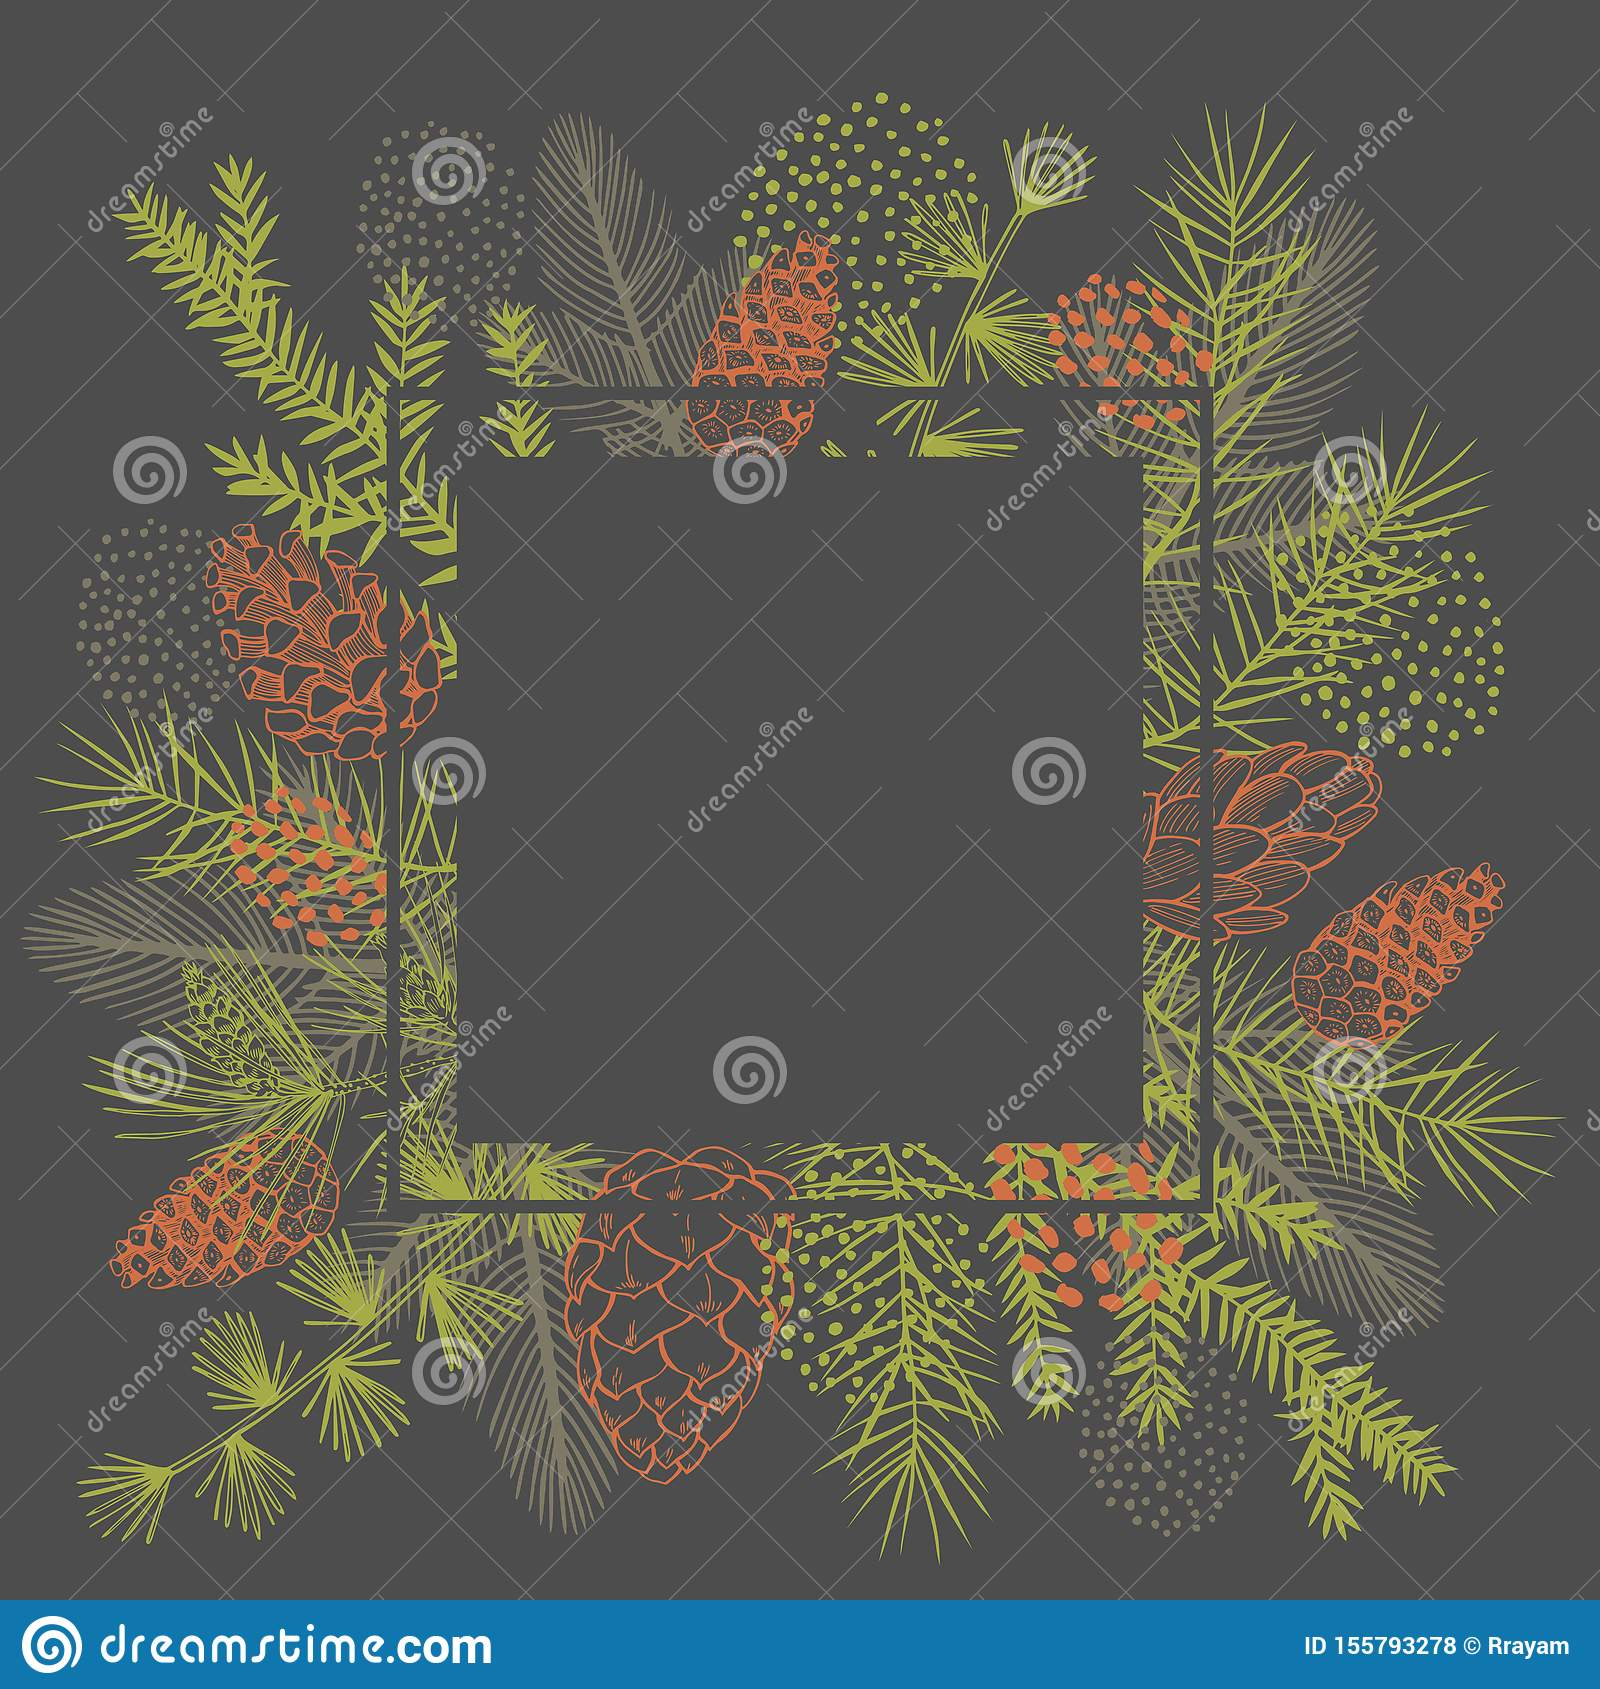 Vector frame with Christmas plant.